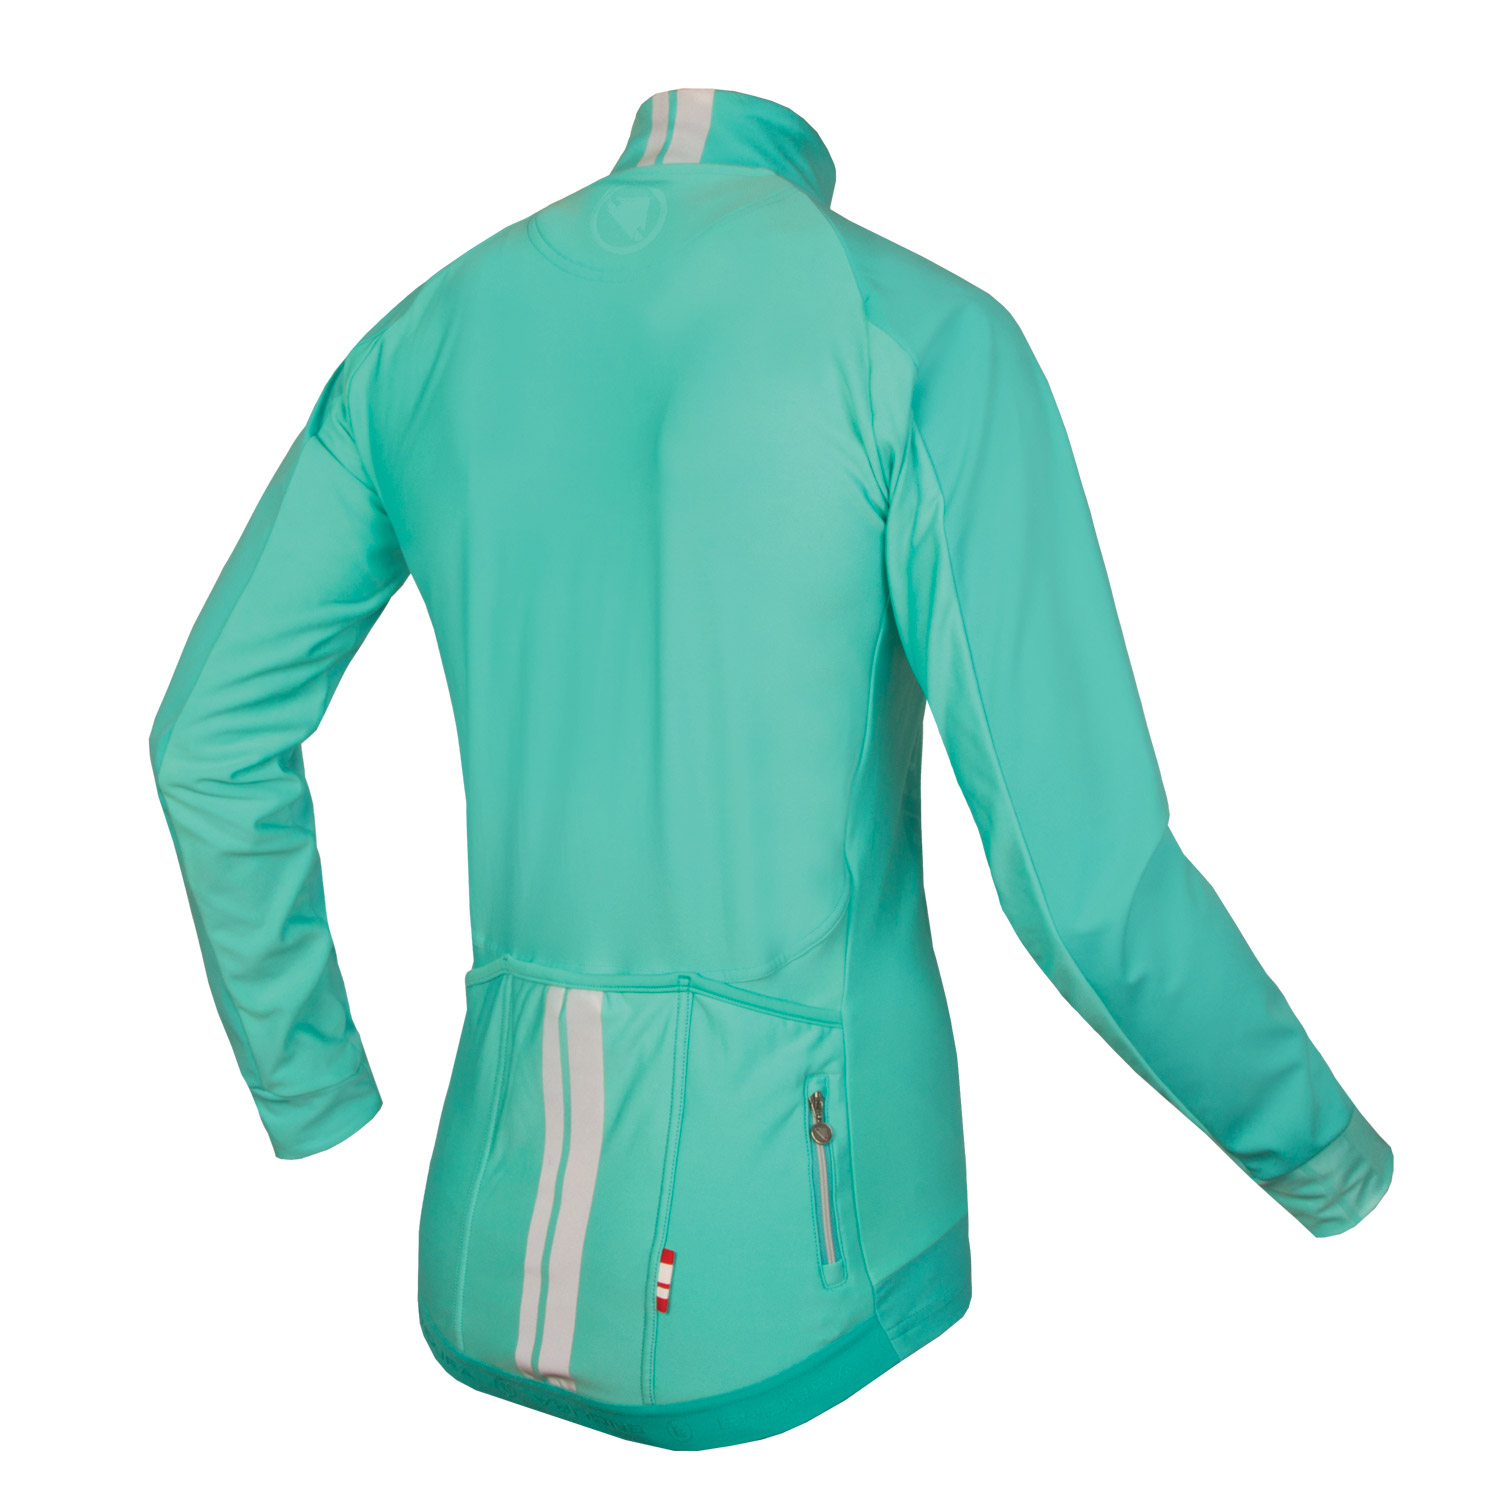 Wms FS260-Pro Jetstream L/S Jersey Turquoise